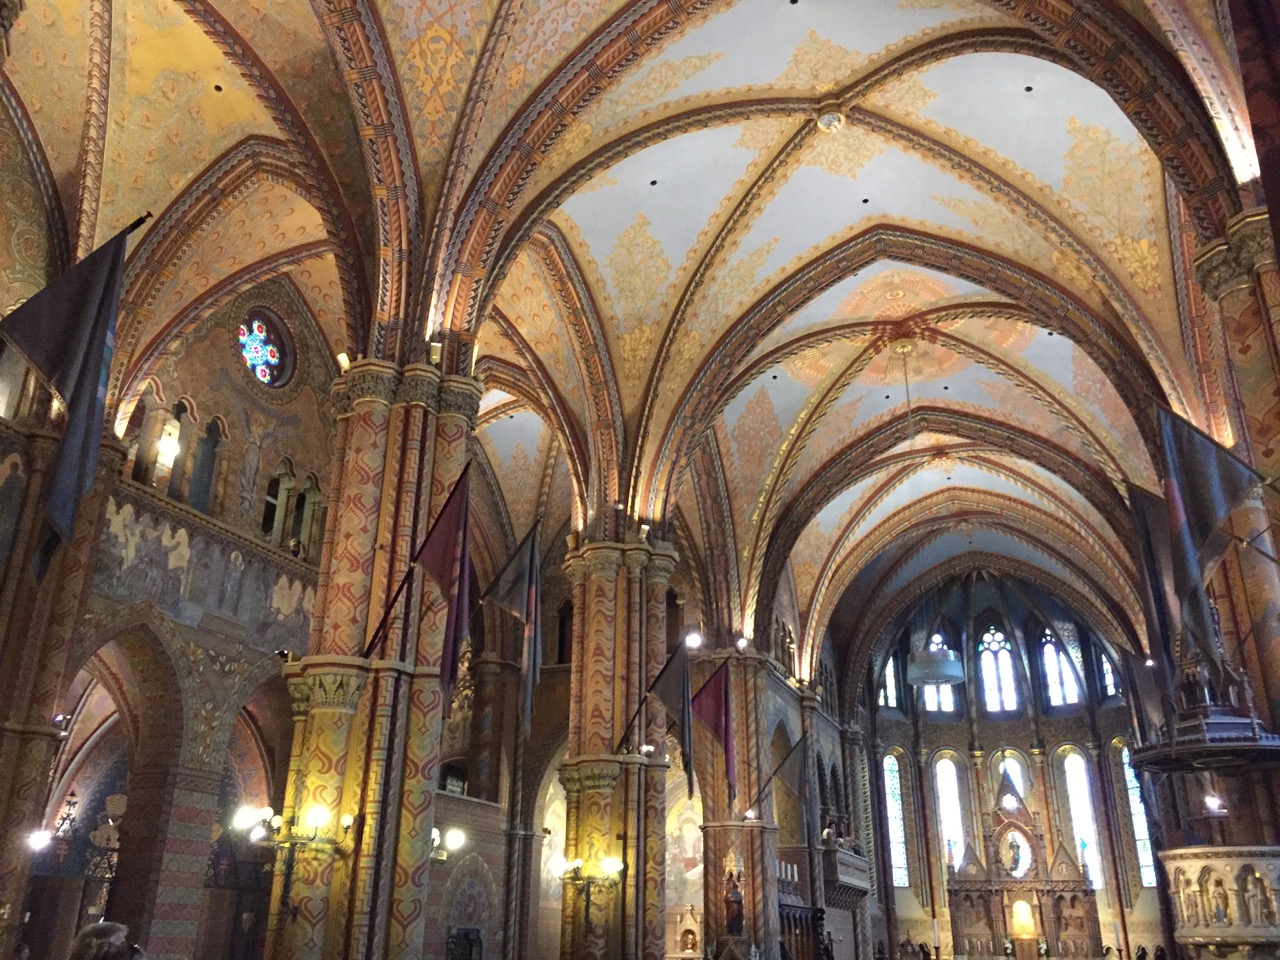 The inside of Matthias Church. Probably one of the prettiest churches I've seen so far.